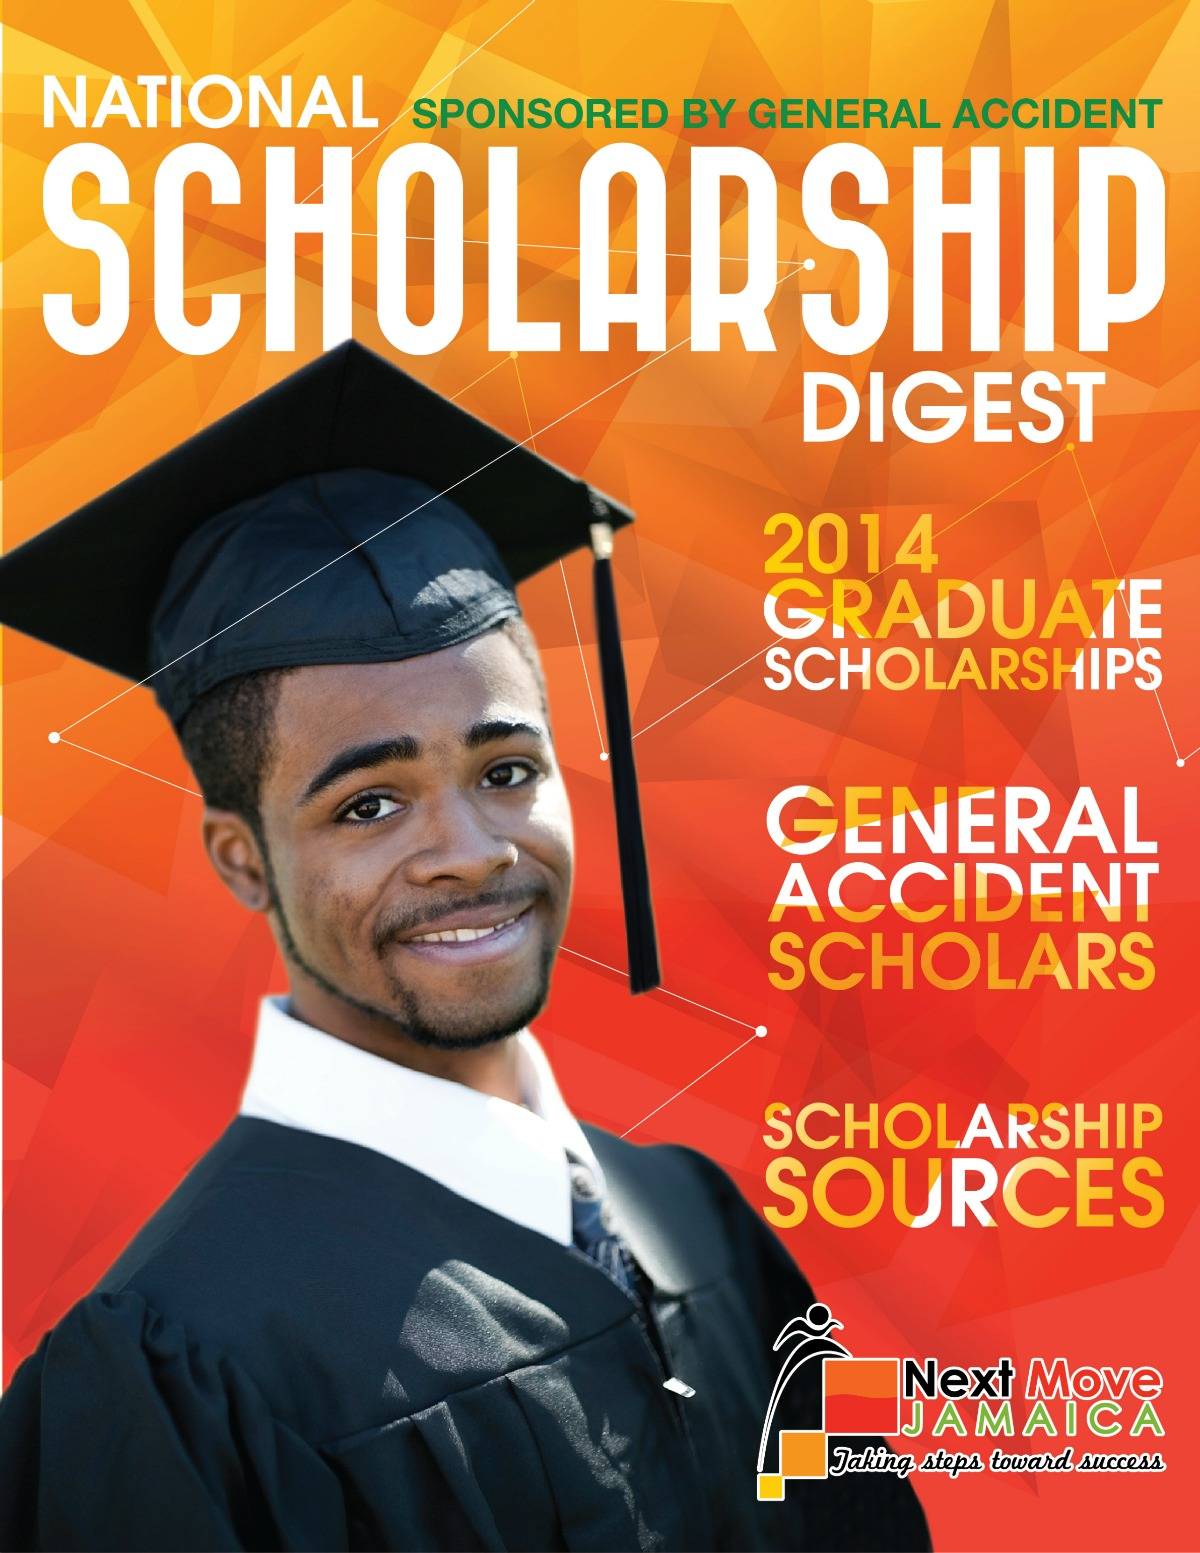 Jamaica National Scholarship Digest, grants, financial aid, college scholarships